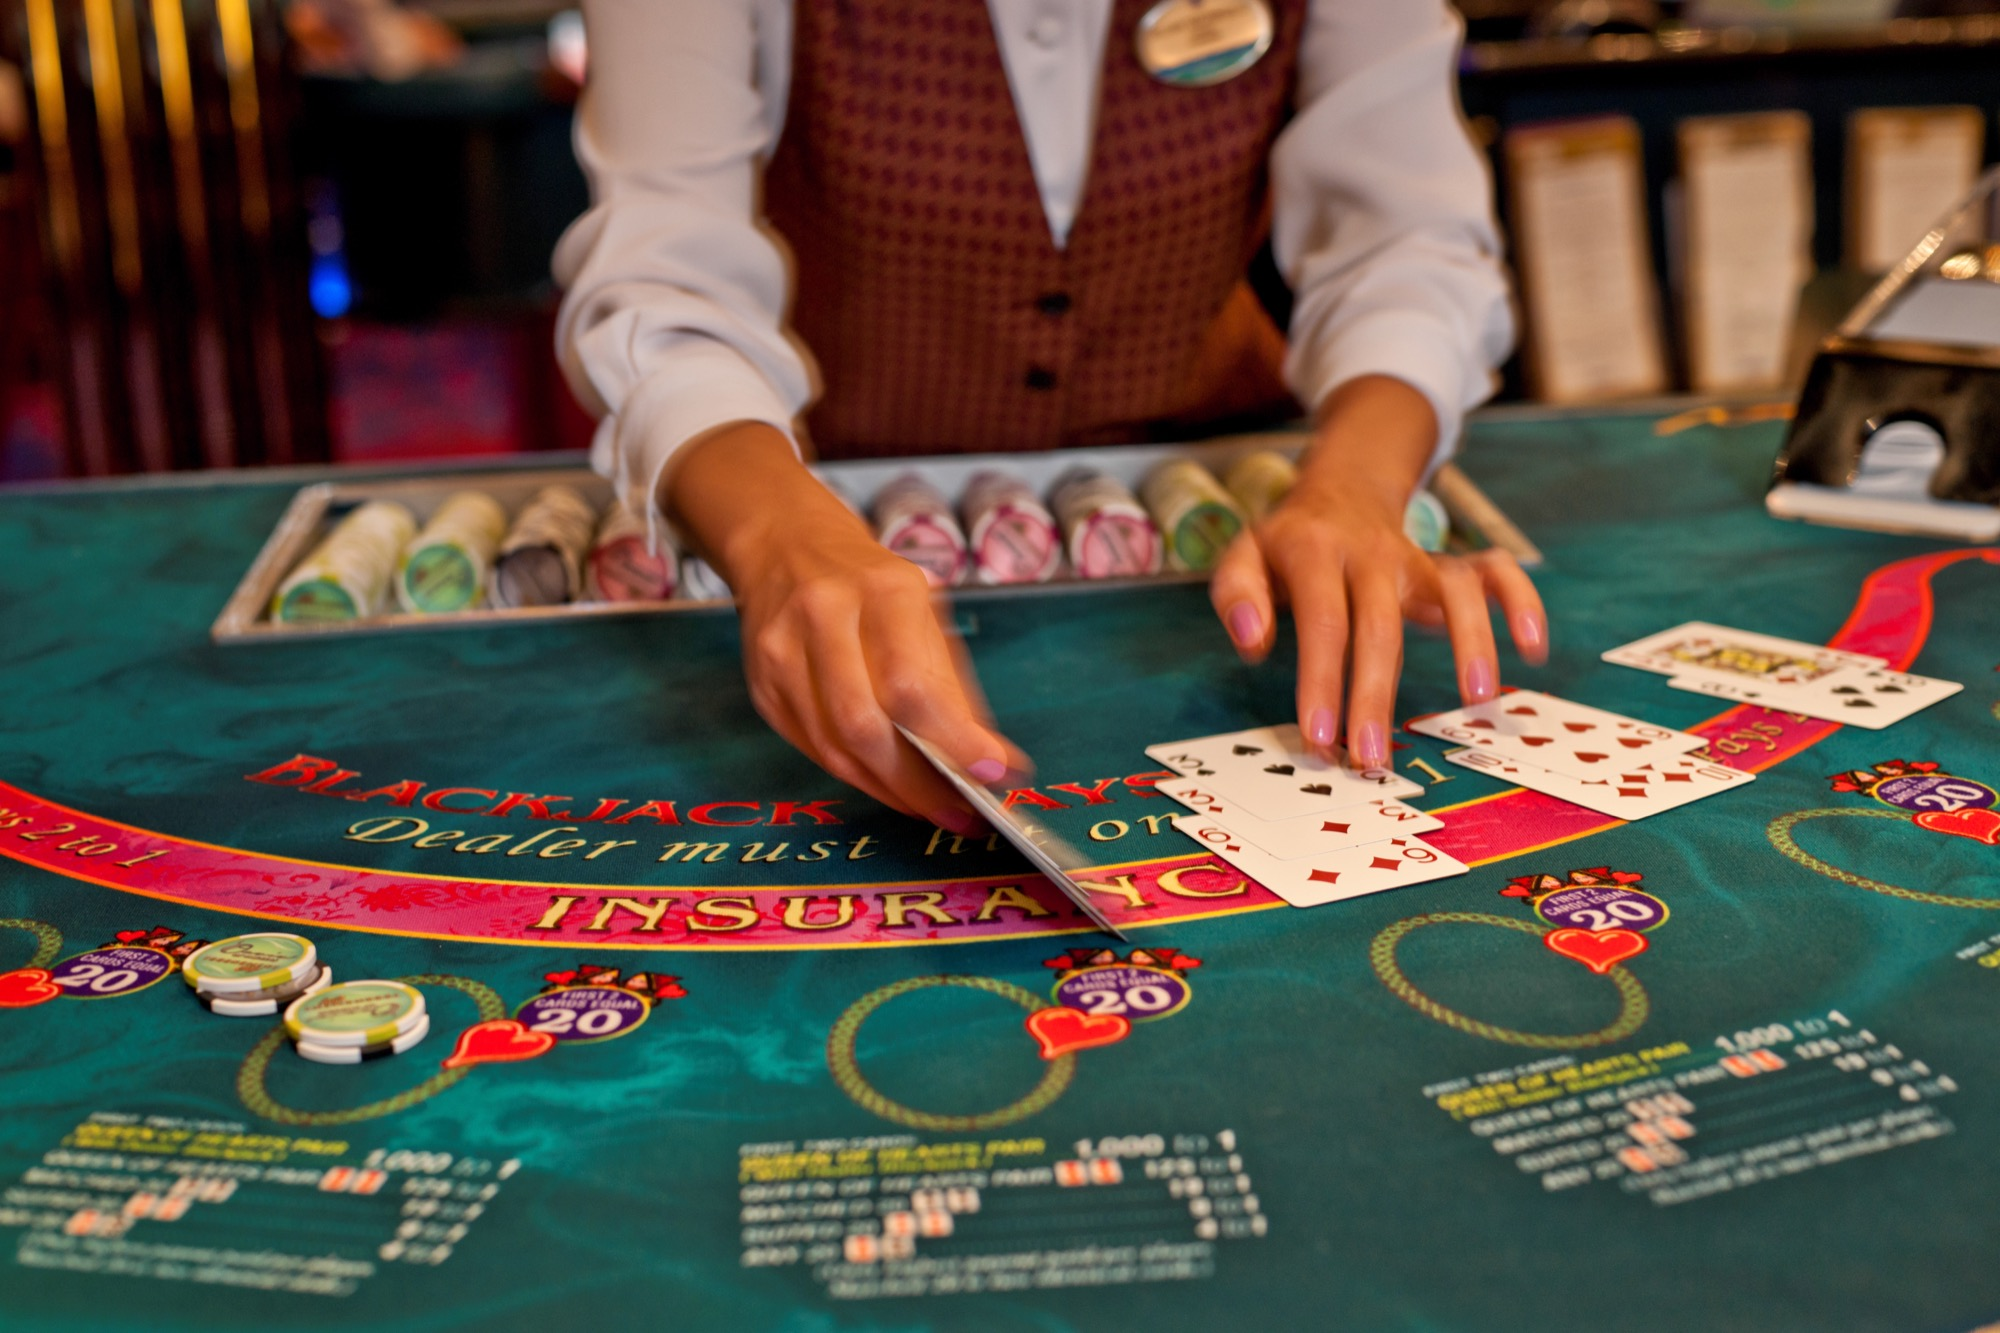 Royal Caribbean International Oasis of the Seas Casino 4.jpg